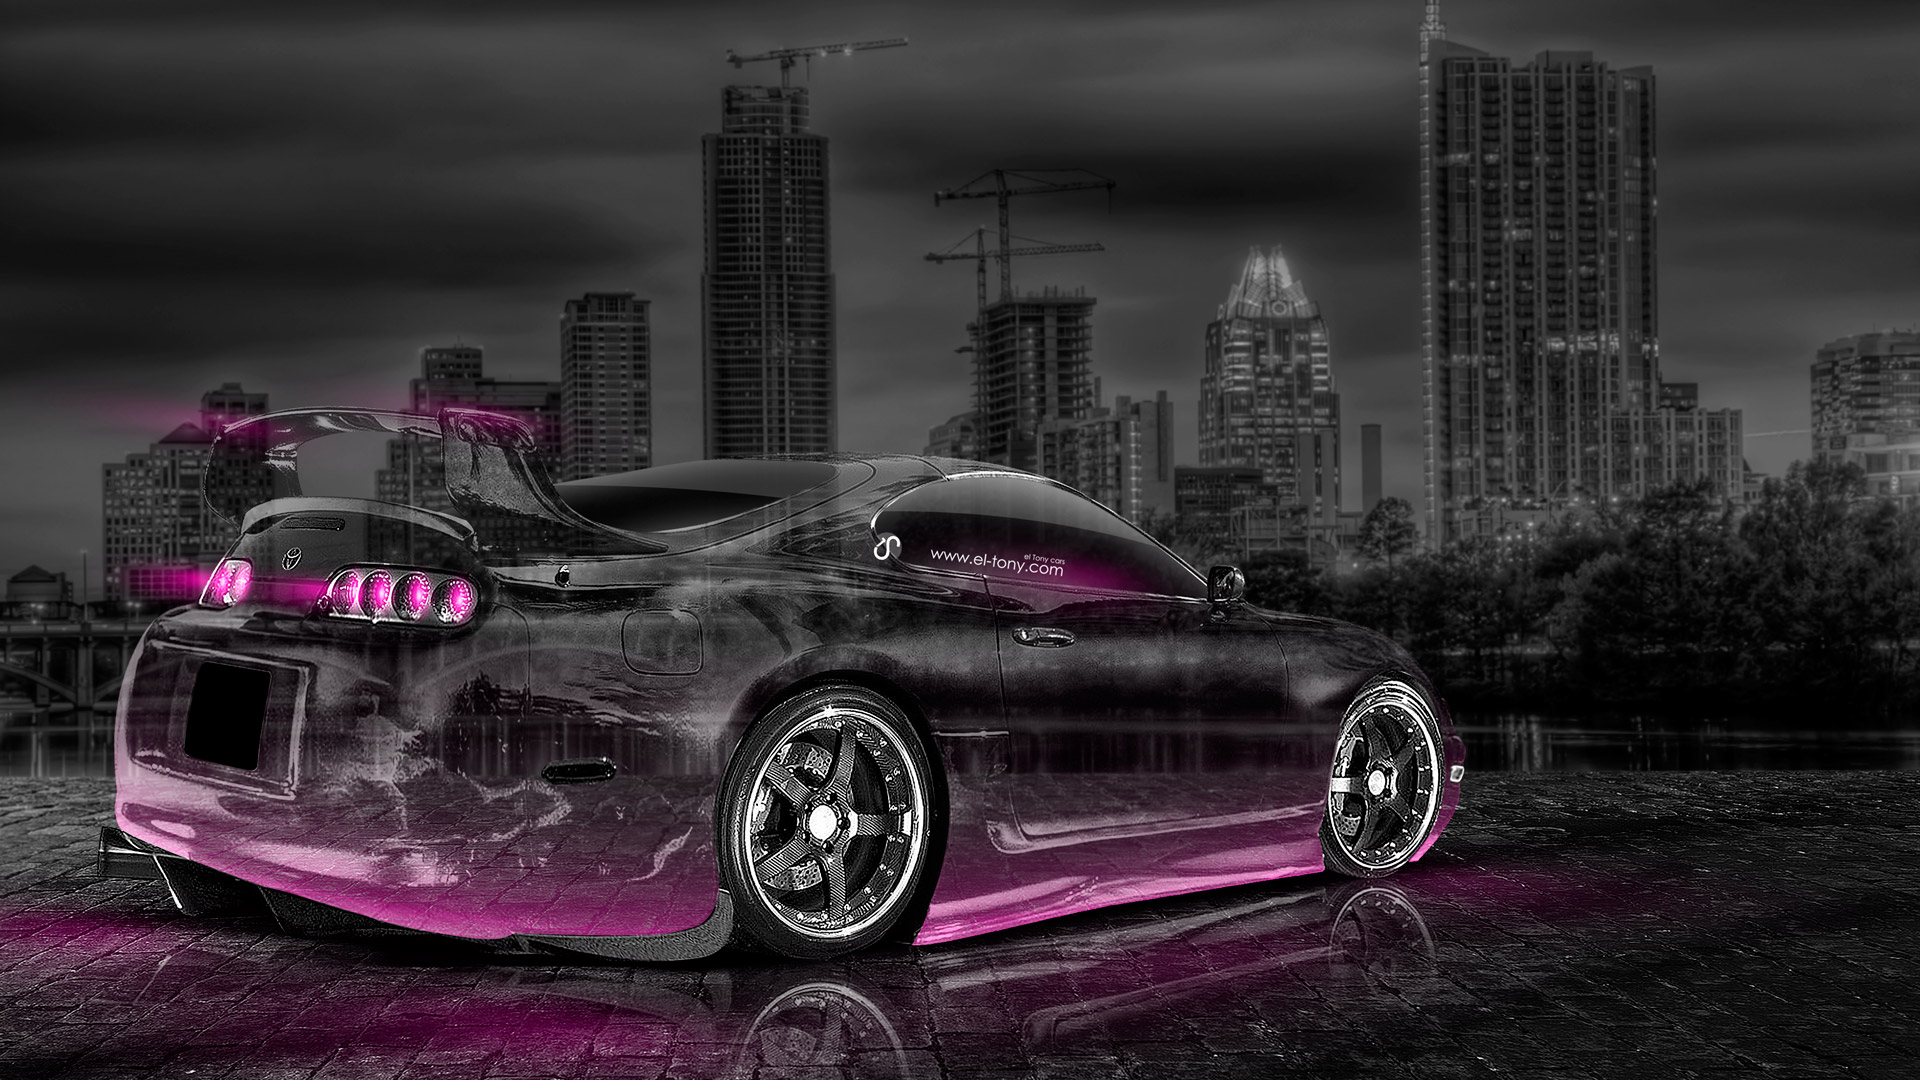 Toyota Supra JDM Crystal City Car 2014 Pink